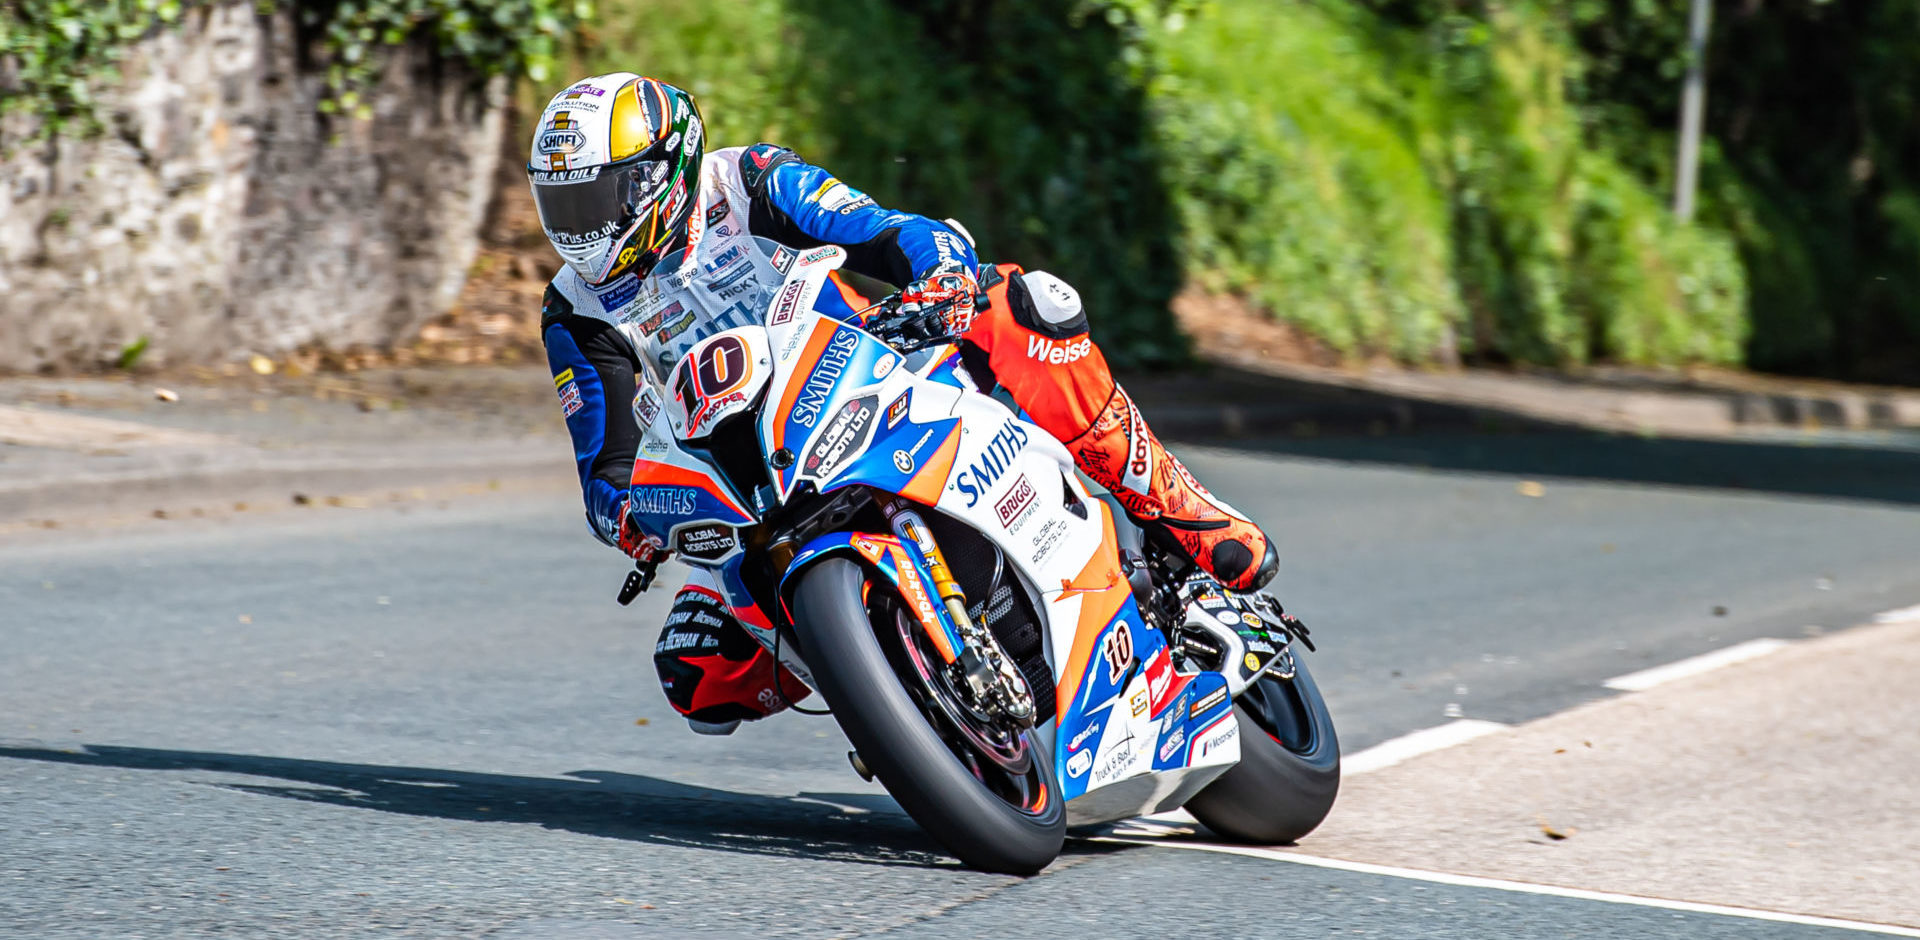 Peter Hickman (10) in action at the 2019 Isle of Man TT. Photo by Barry Clay.